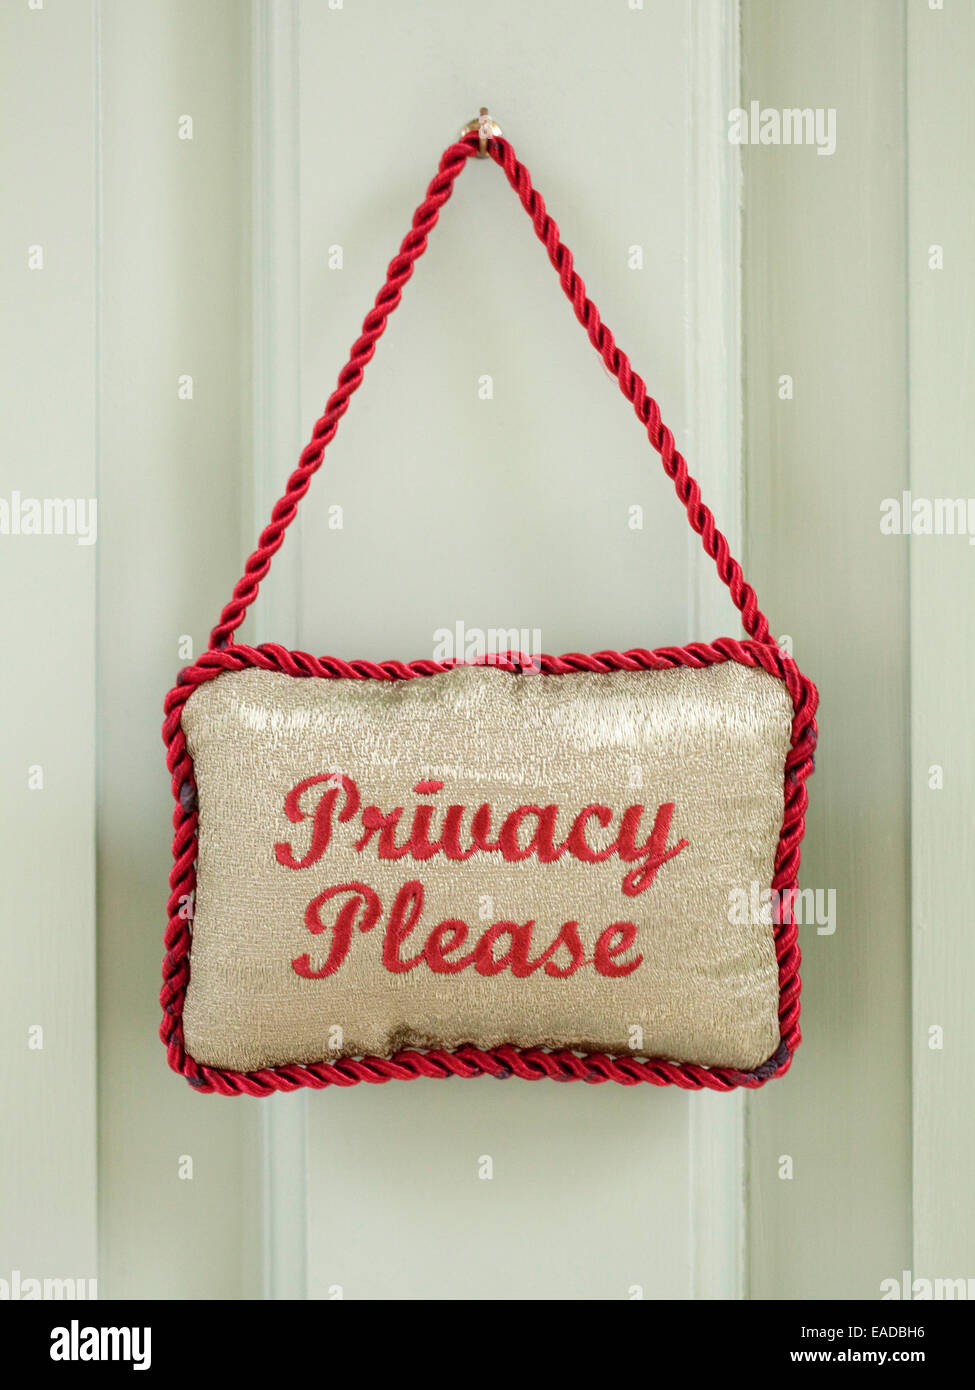 privacy please sign on hotel door - Stock Image